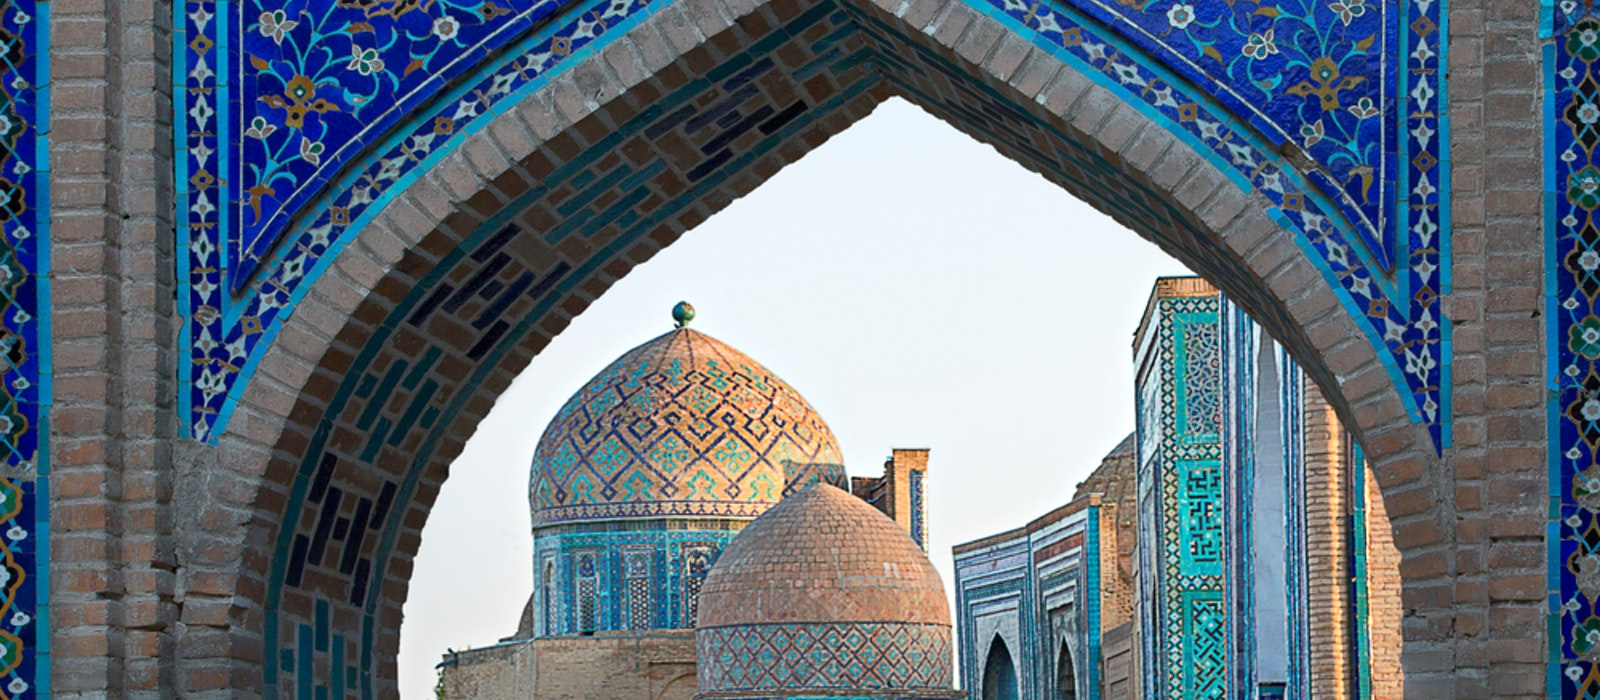 A view of ornate monumental tombs at the Shah-i Zinda Necropolis in Samarkand, Uzbekistan